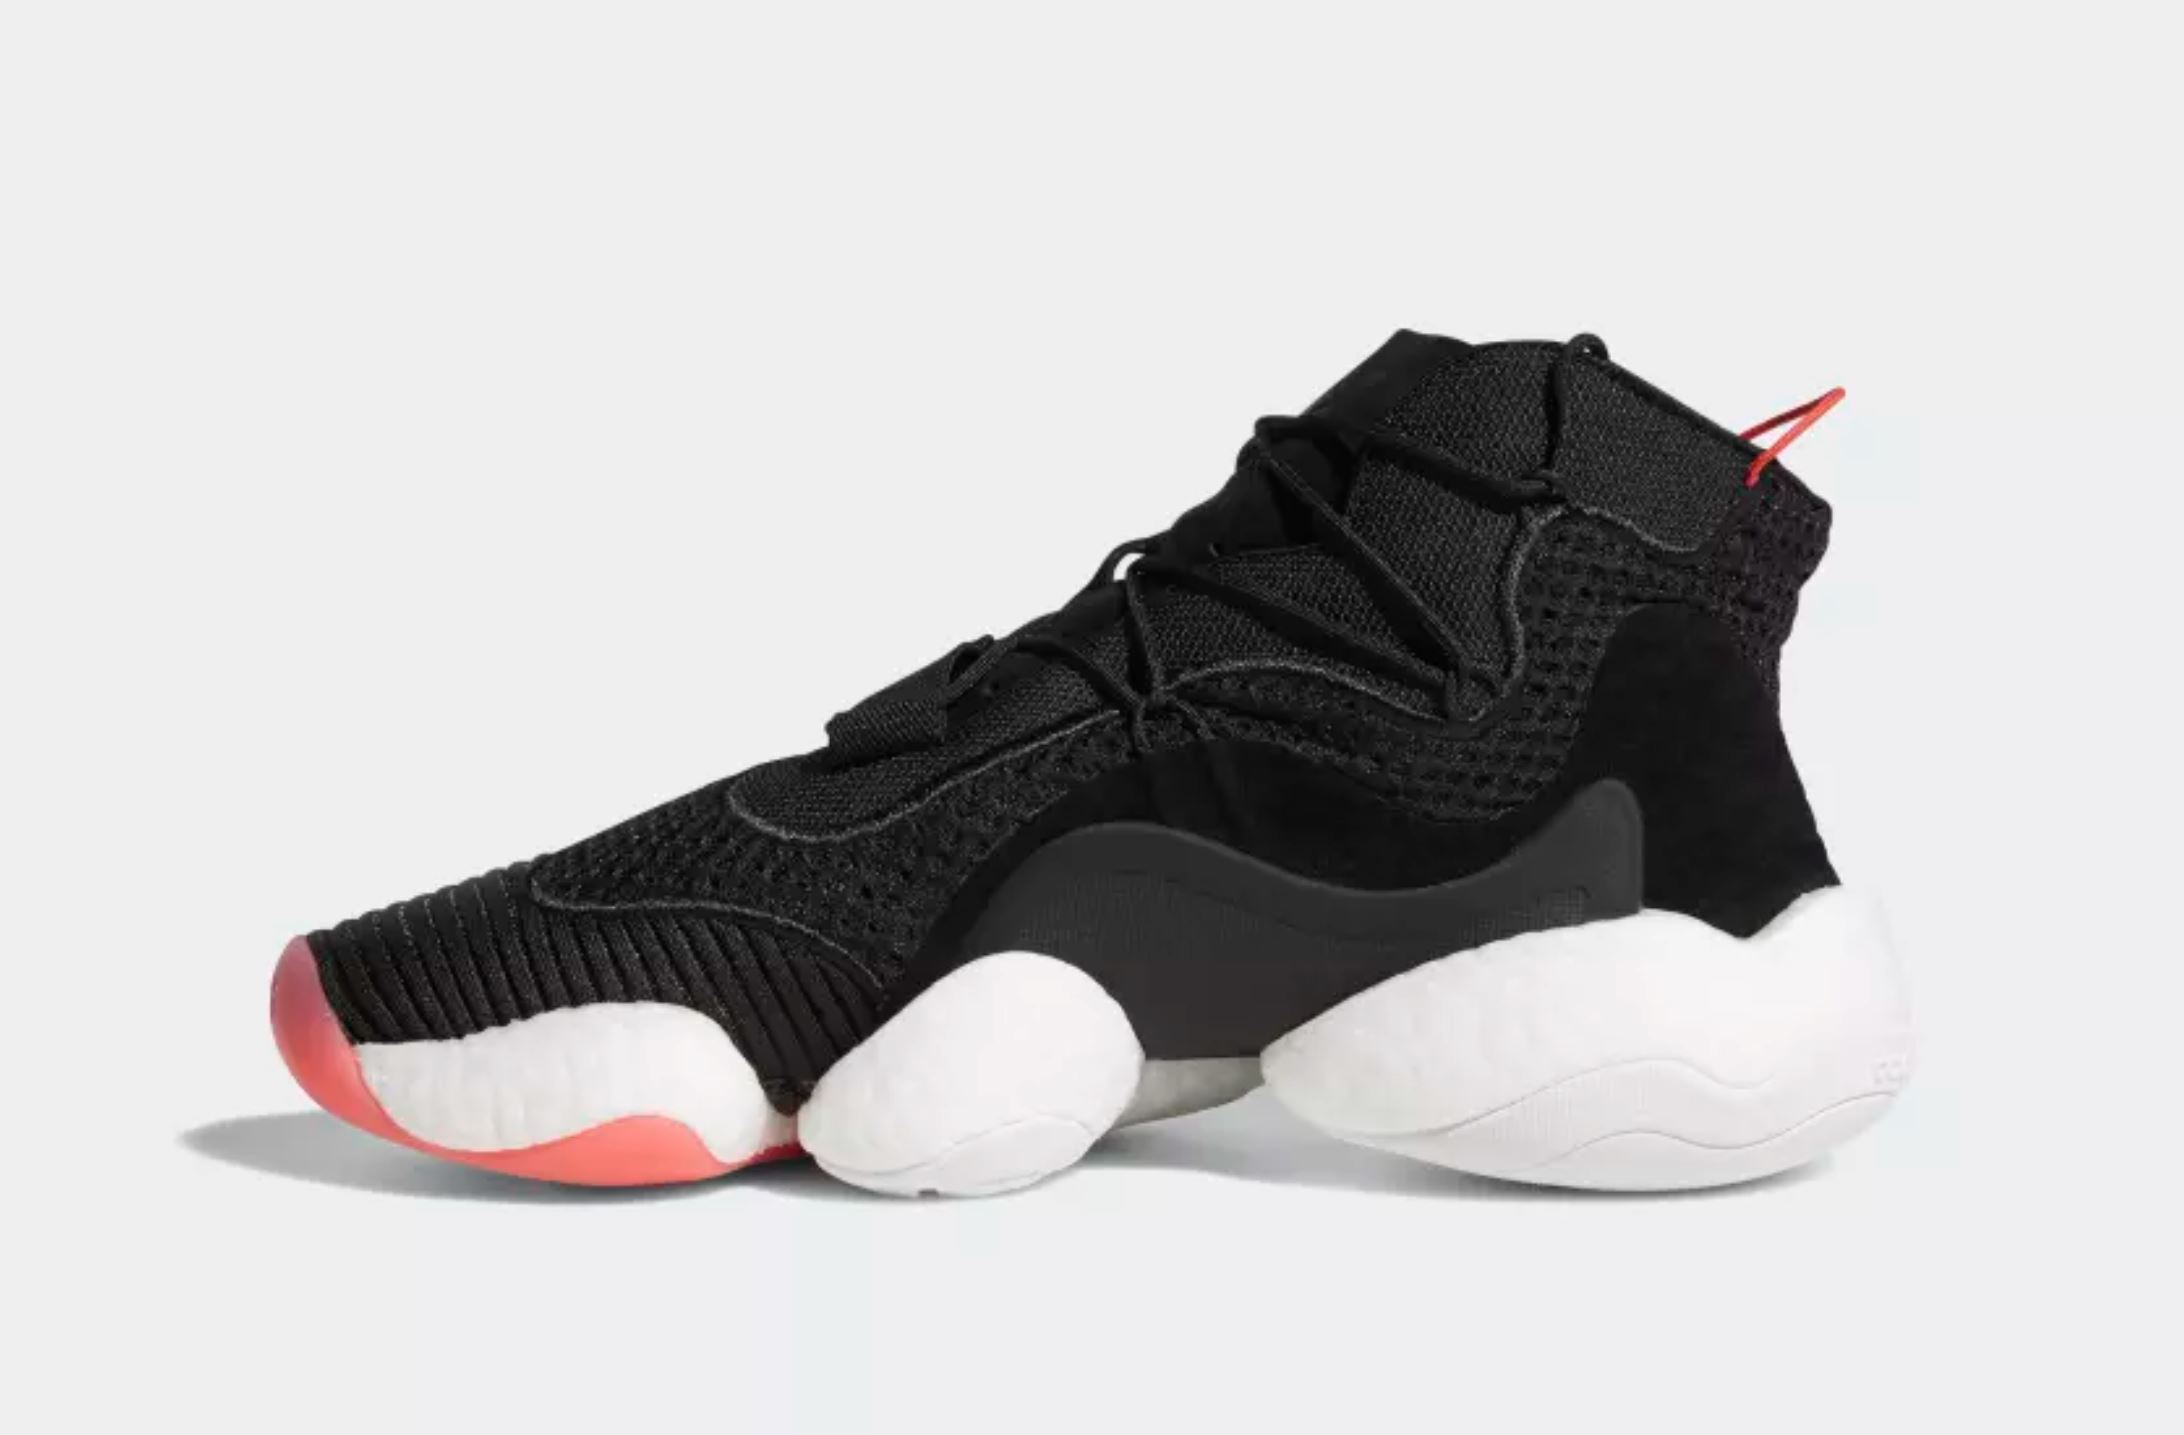 adidas crazy BYW black red 6